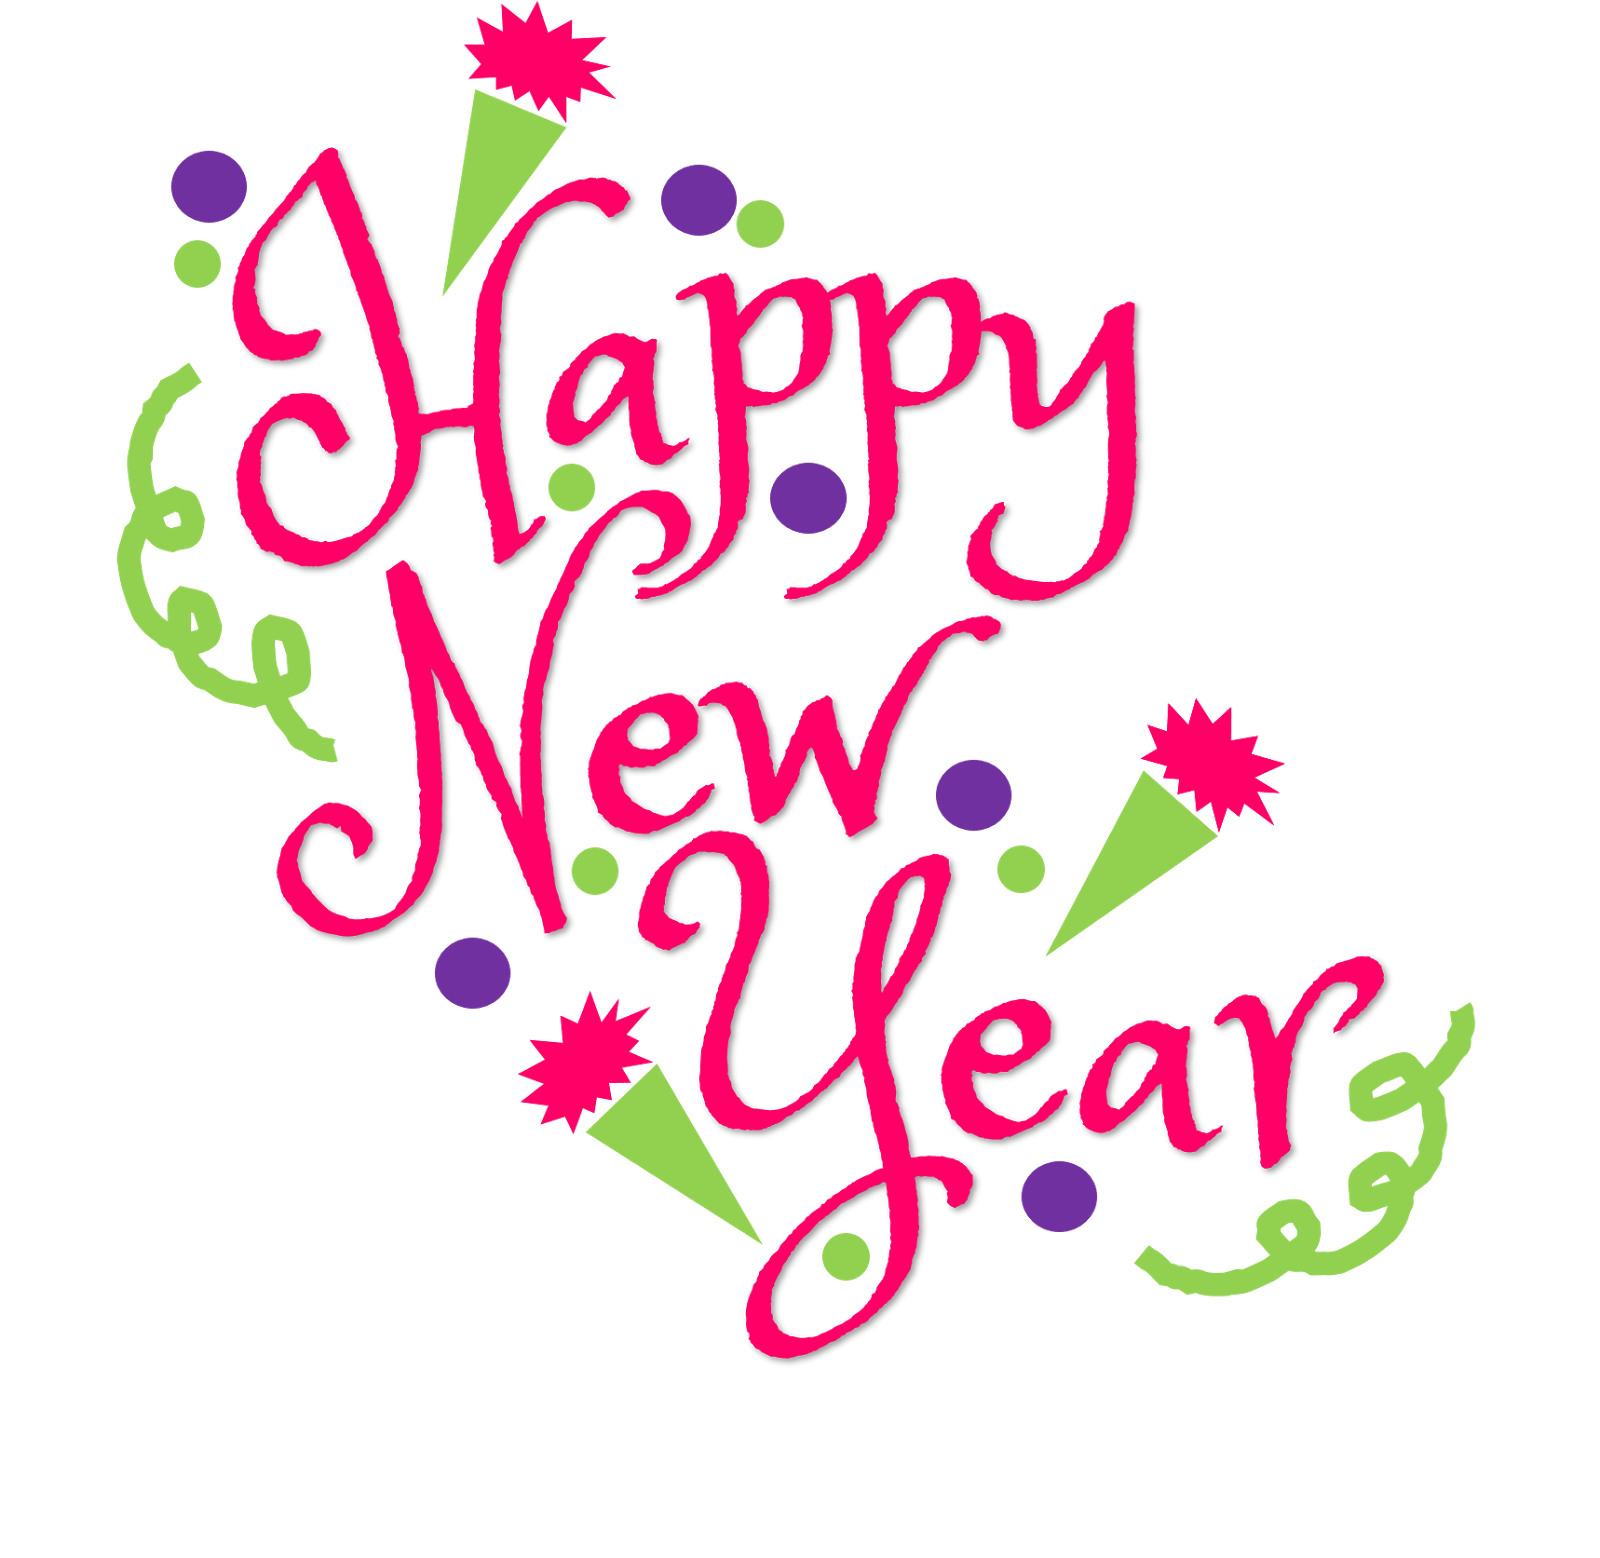 happy new year clipart 2019 for download free new year clipart happy new year quotes happy new year gif new year clipart happy new year quotes